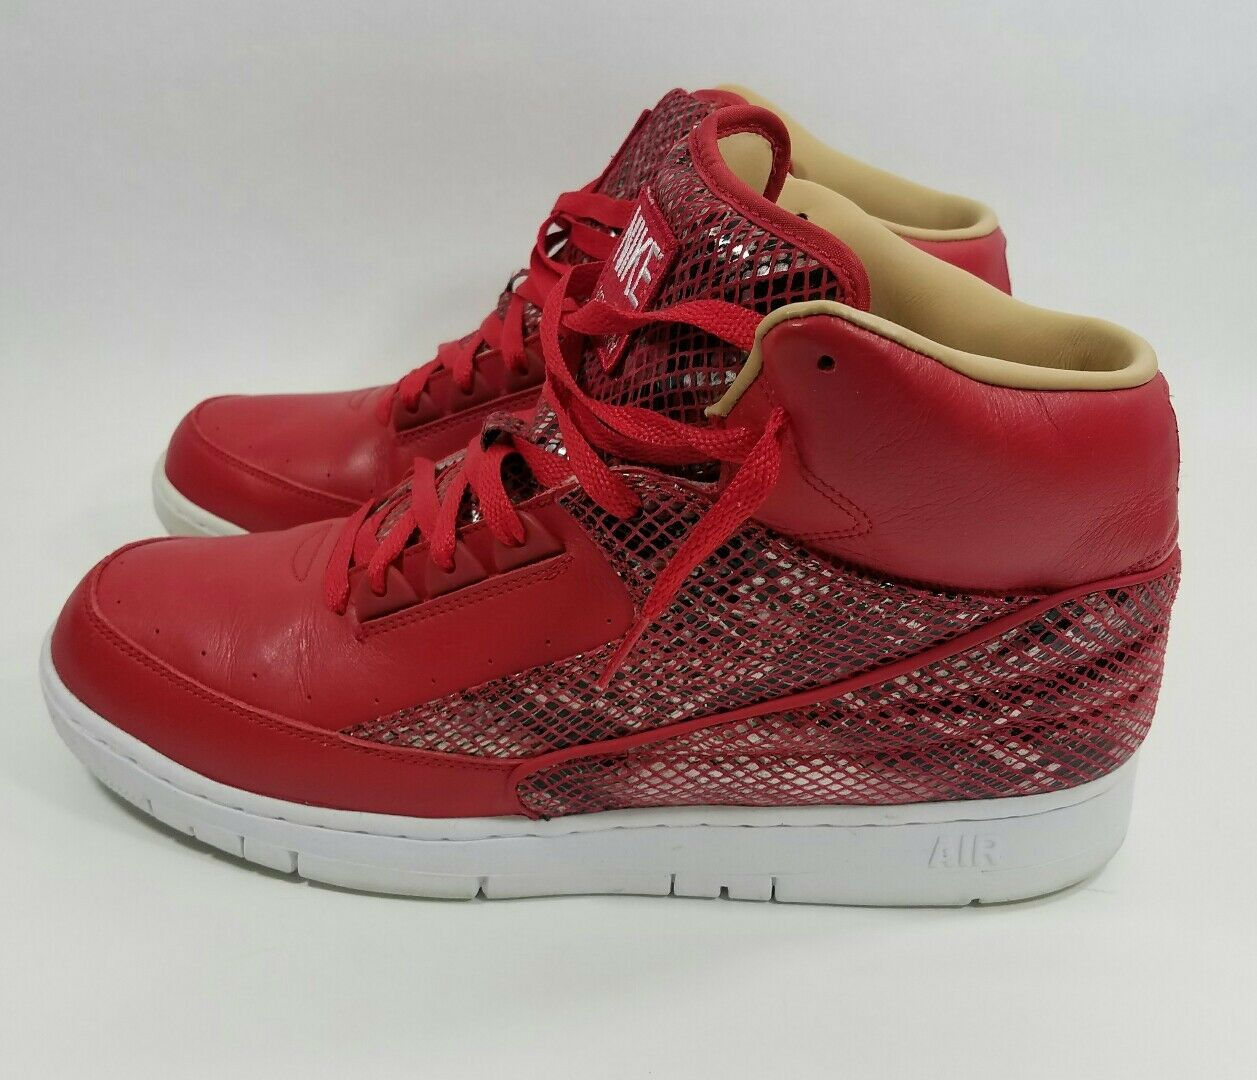 b50ab6d55dd9 ... Nike Air Python Retro SP Lux Leather Leather Leather University Red  White 632631-601 snake ...